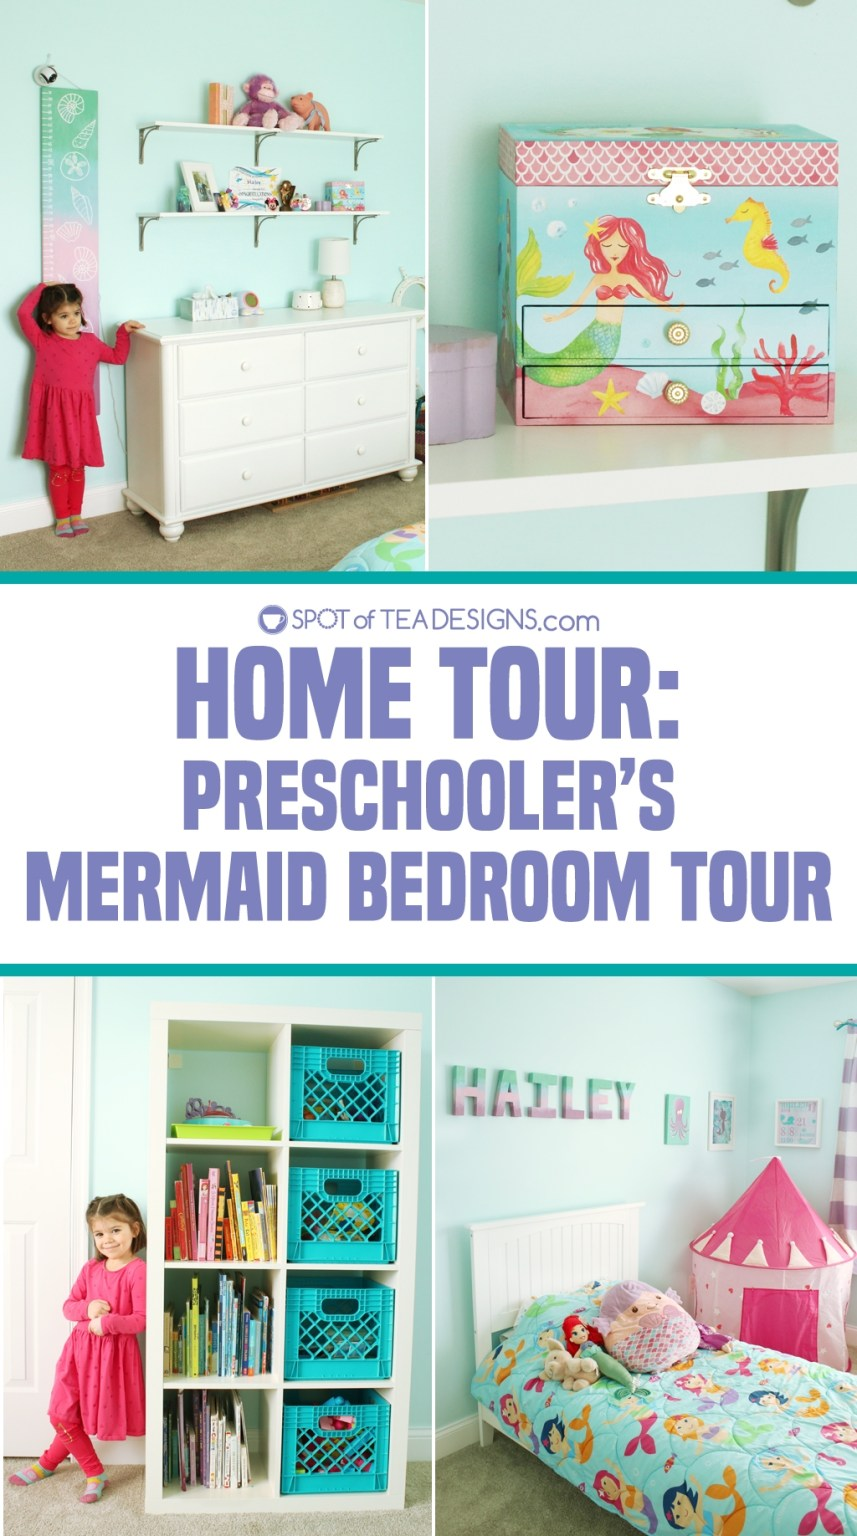 Home Tour - Preschooler's Mermaid Bedroom | spotofteadesigns.com